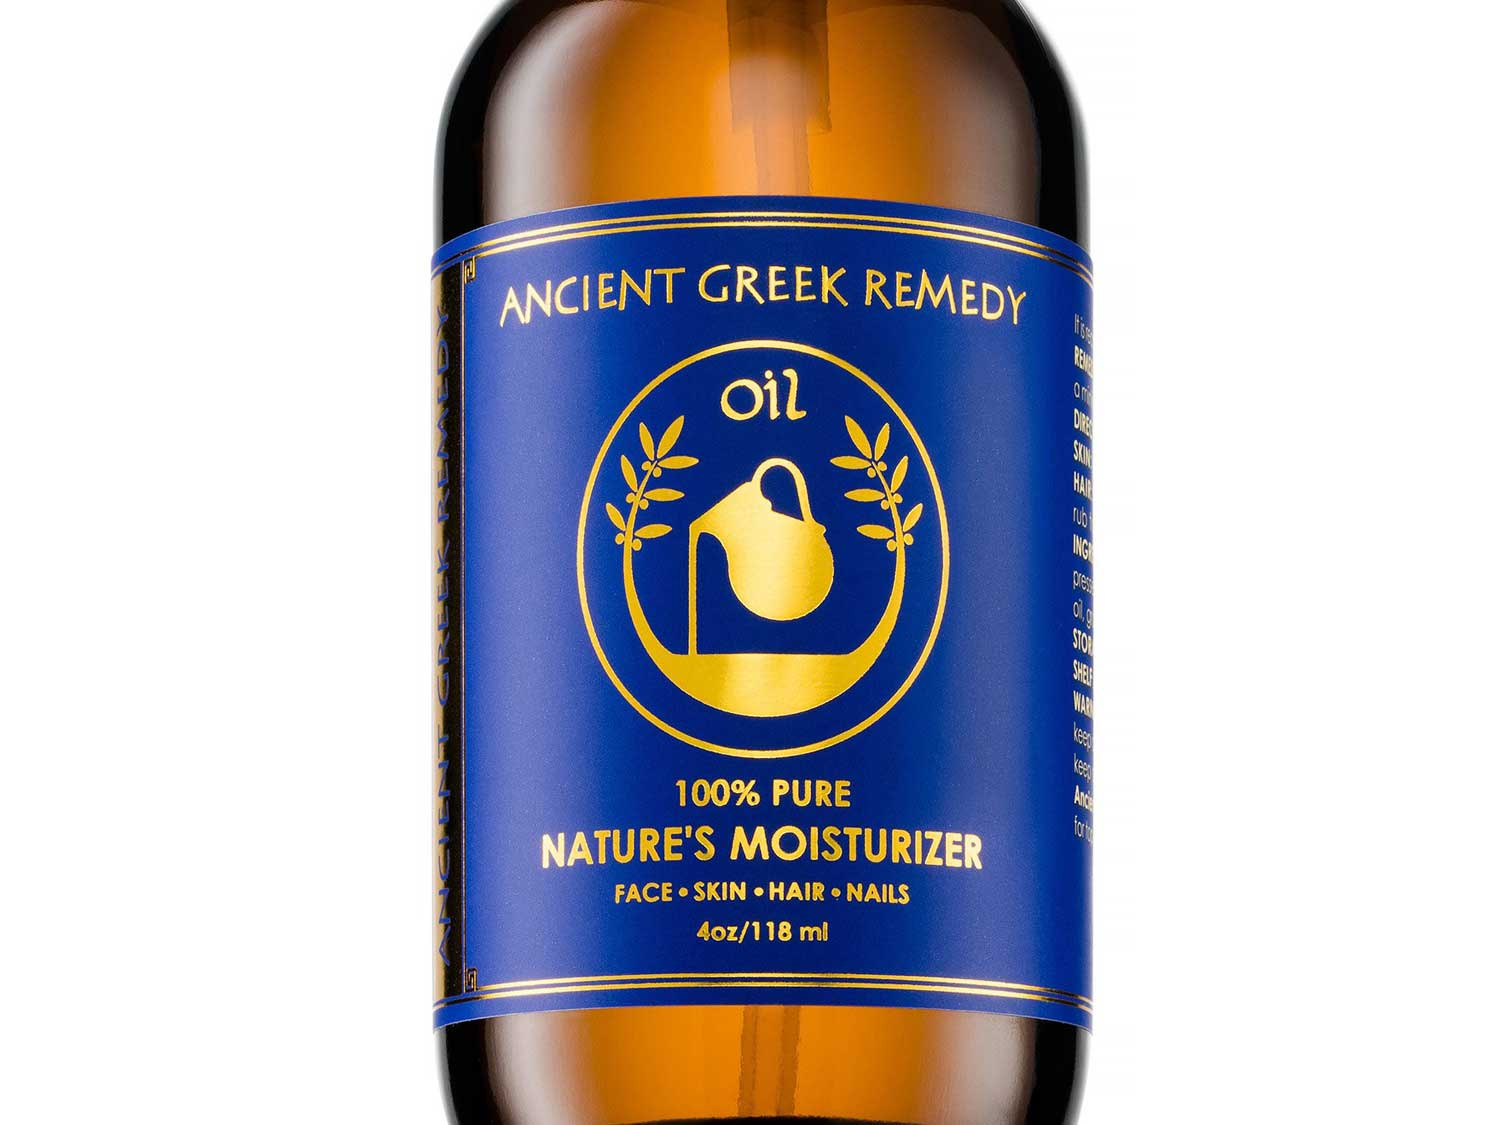 Organic Blend of Olive, Lavender, Almond and Grapeseed oils with Vitamin E